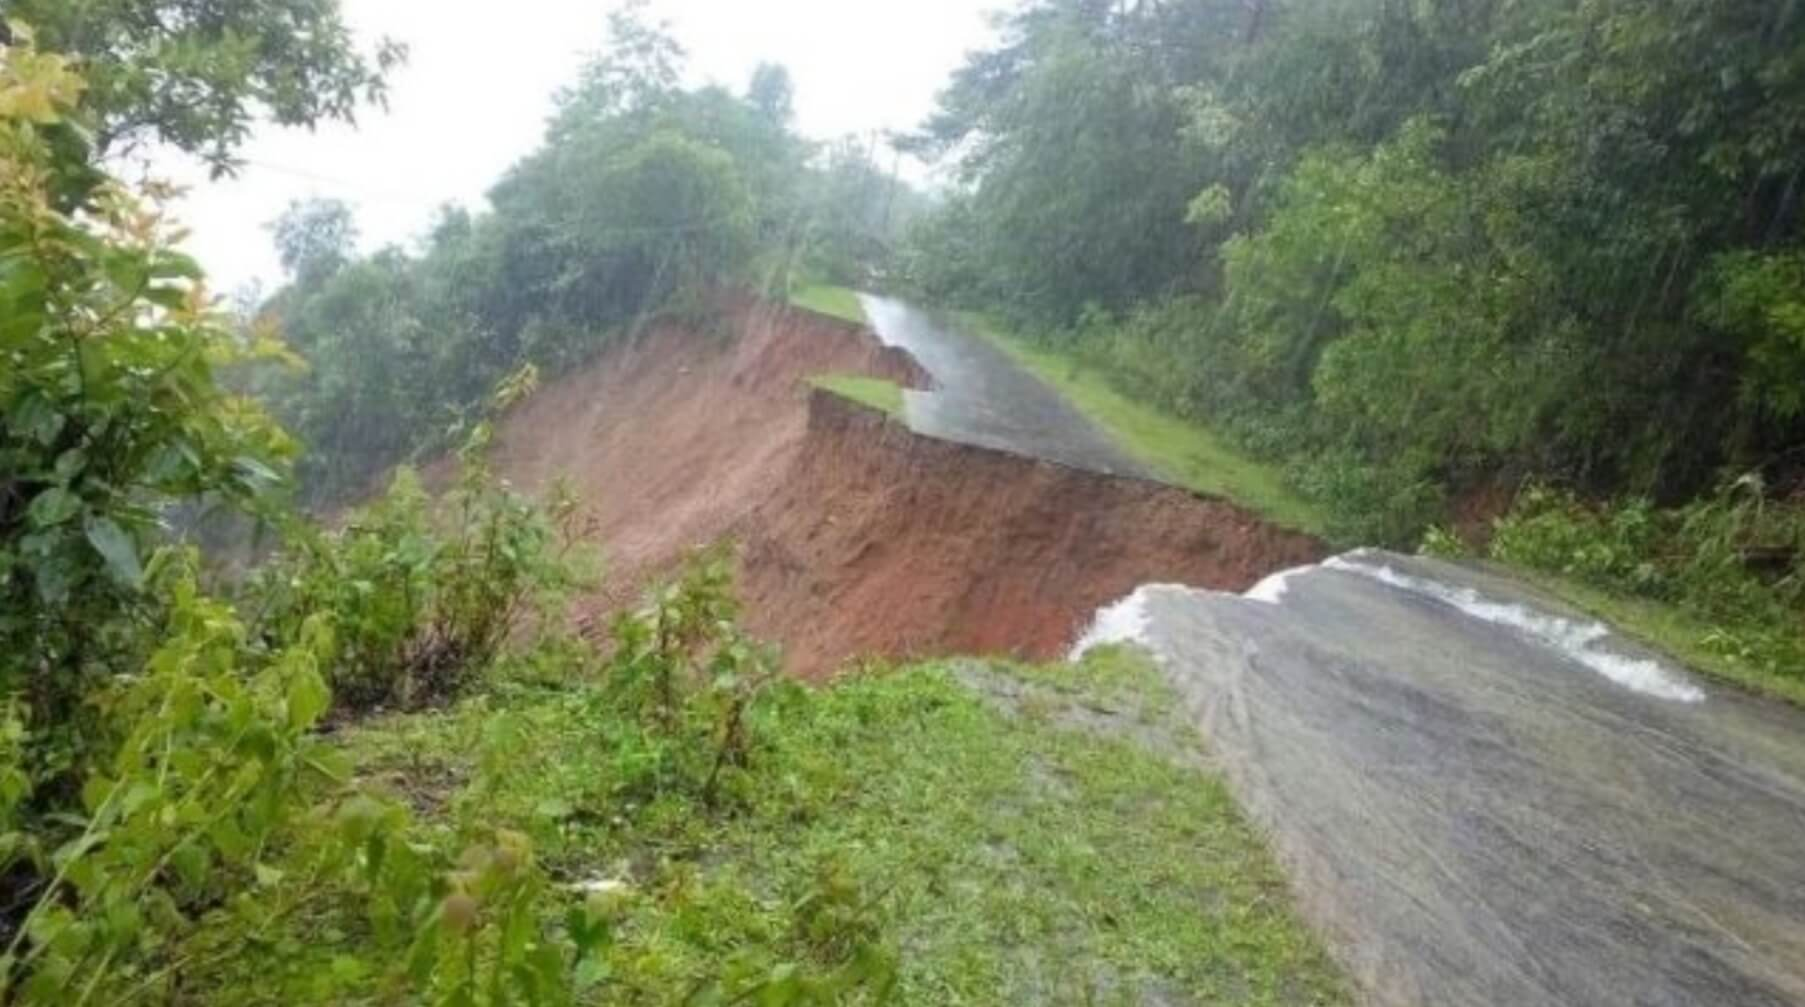 Landslides claim 9 lives in Northeast India